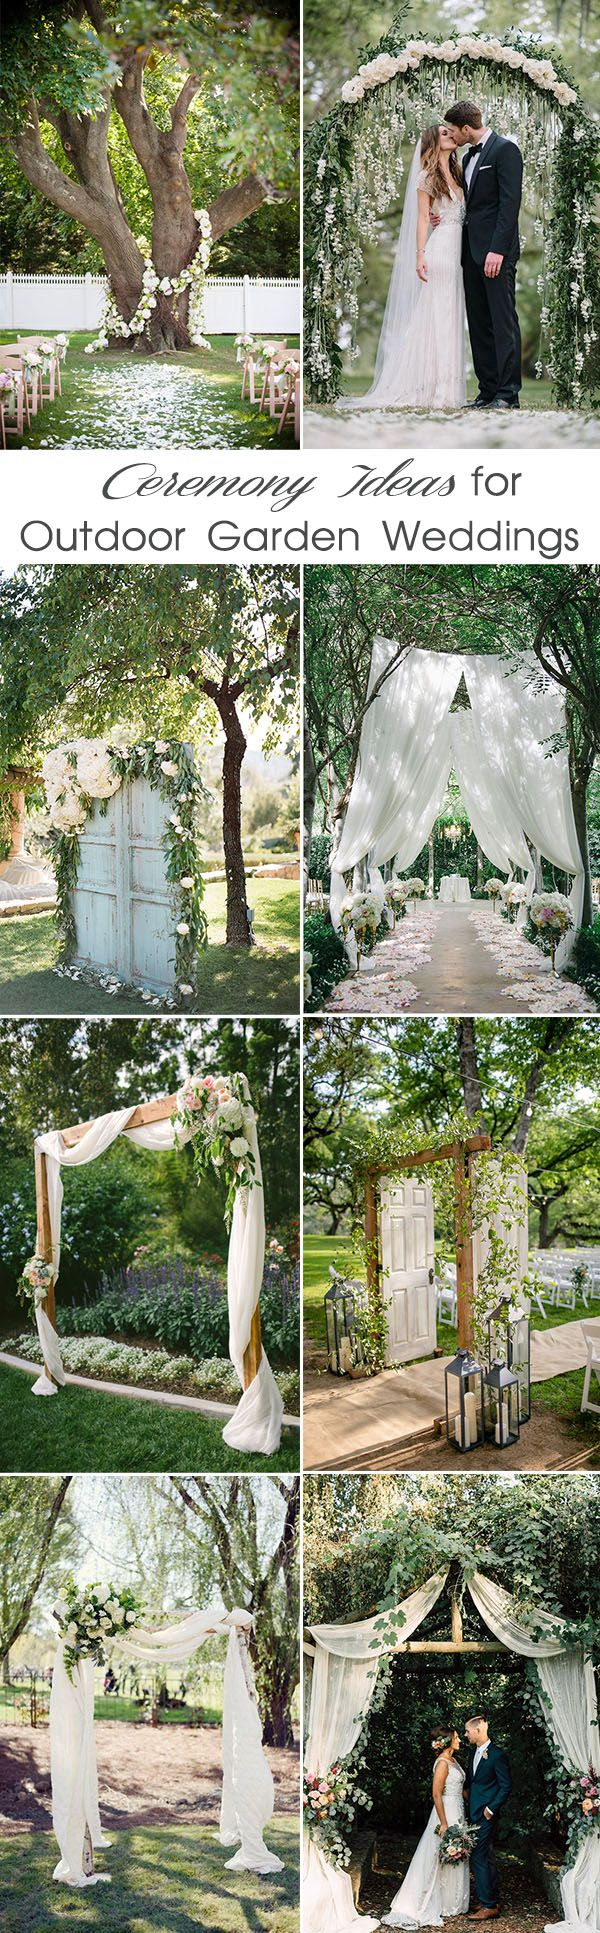 48 Most Inspiring Garden-Inspired Wedding Ideas | Pinterest ...